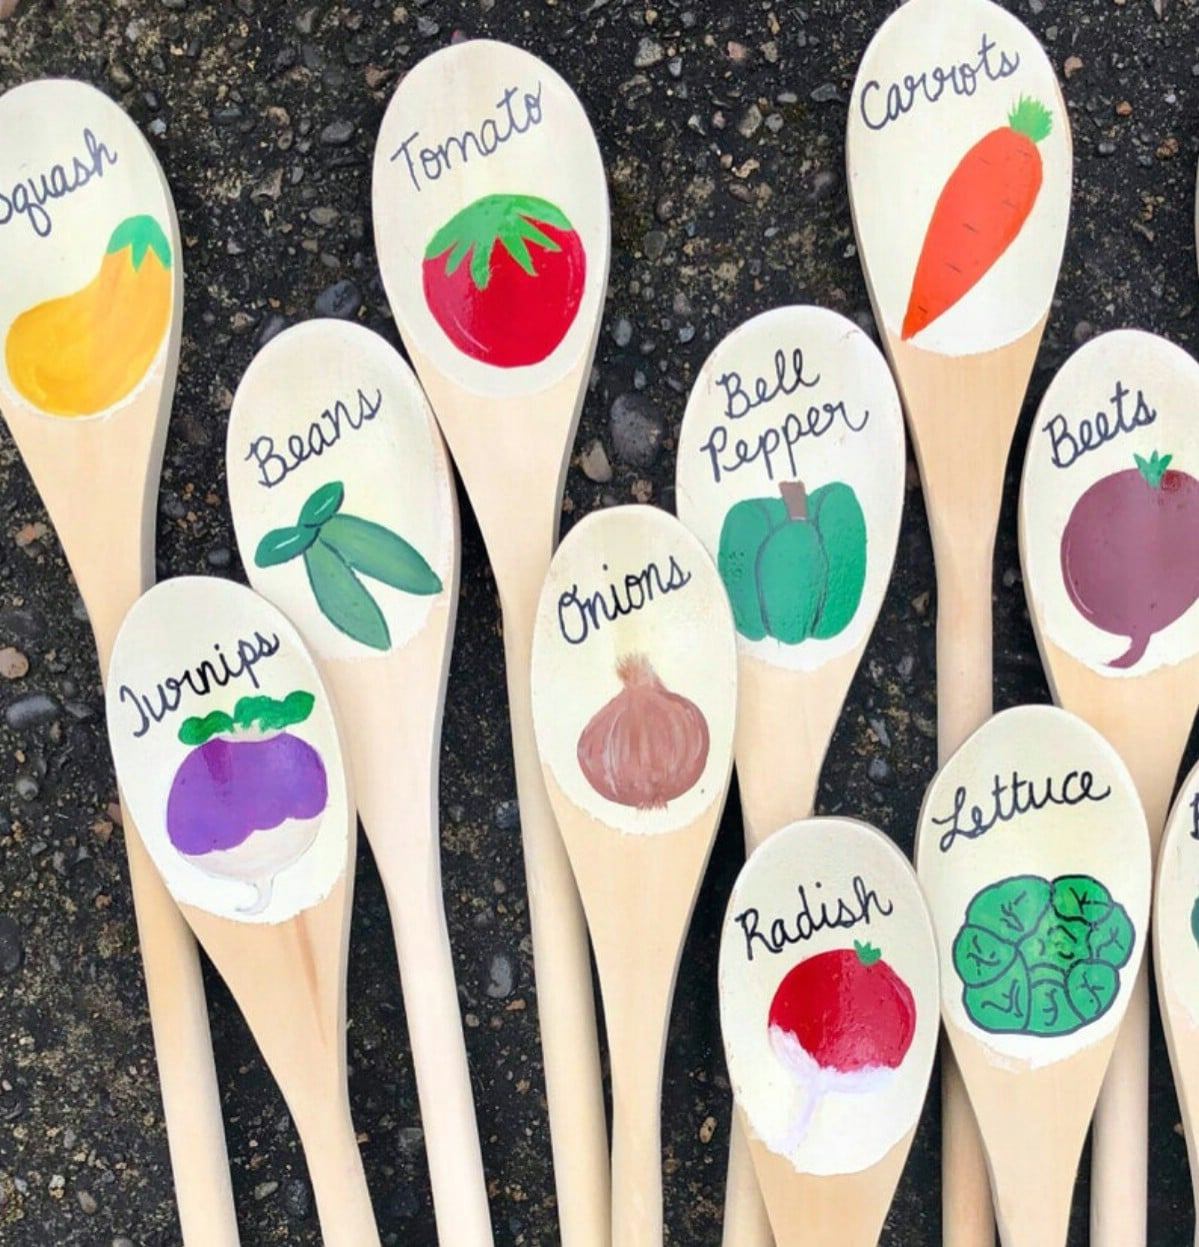 Wooden spoons painted with garden names